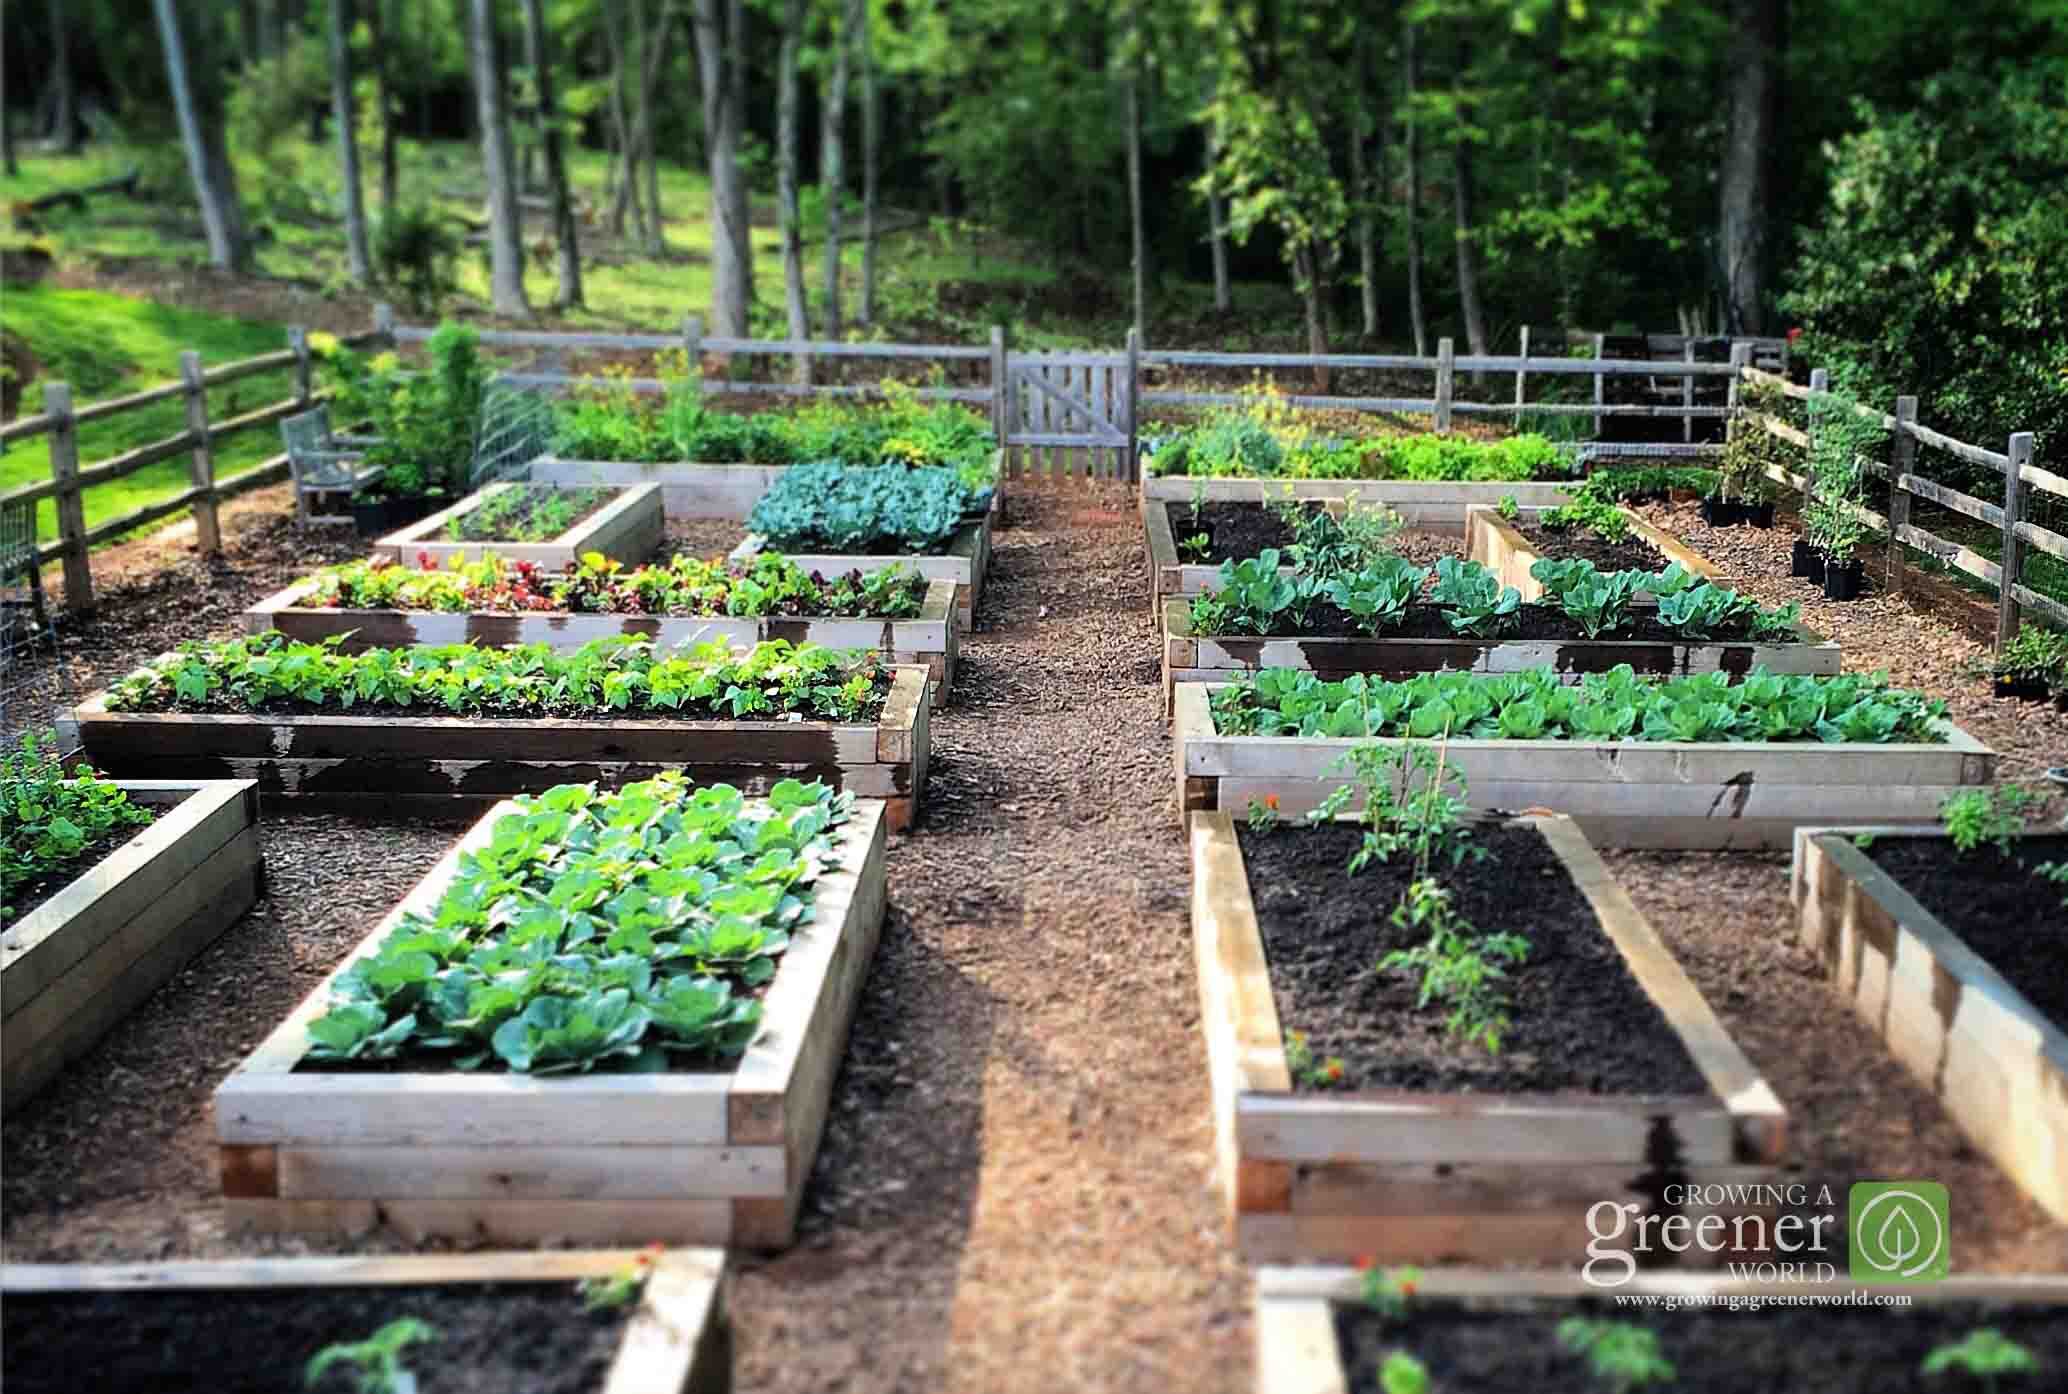 sale charlotte nc kitchen garden in beds for design raised l organic robb microfarm bed